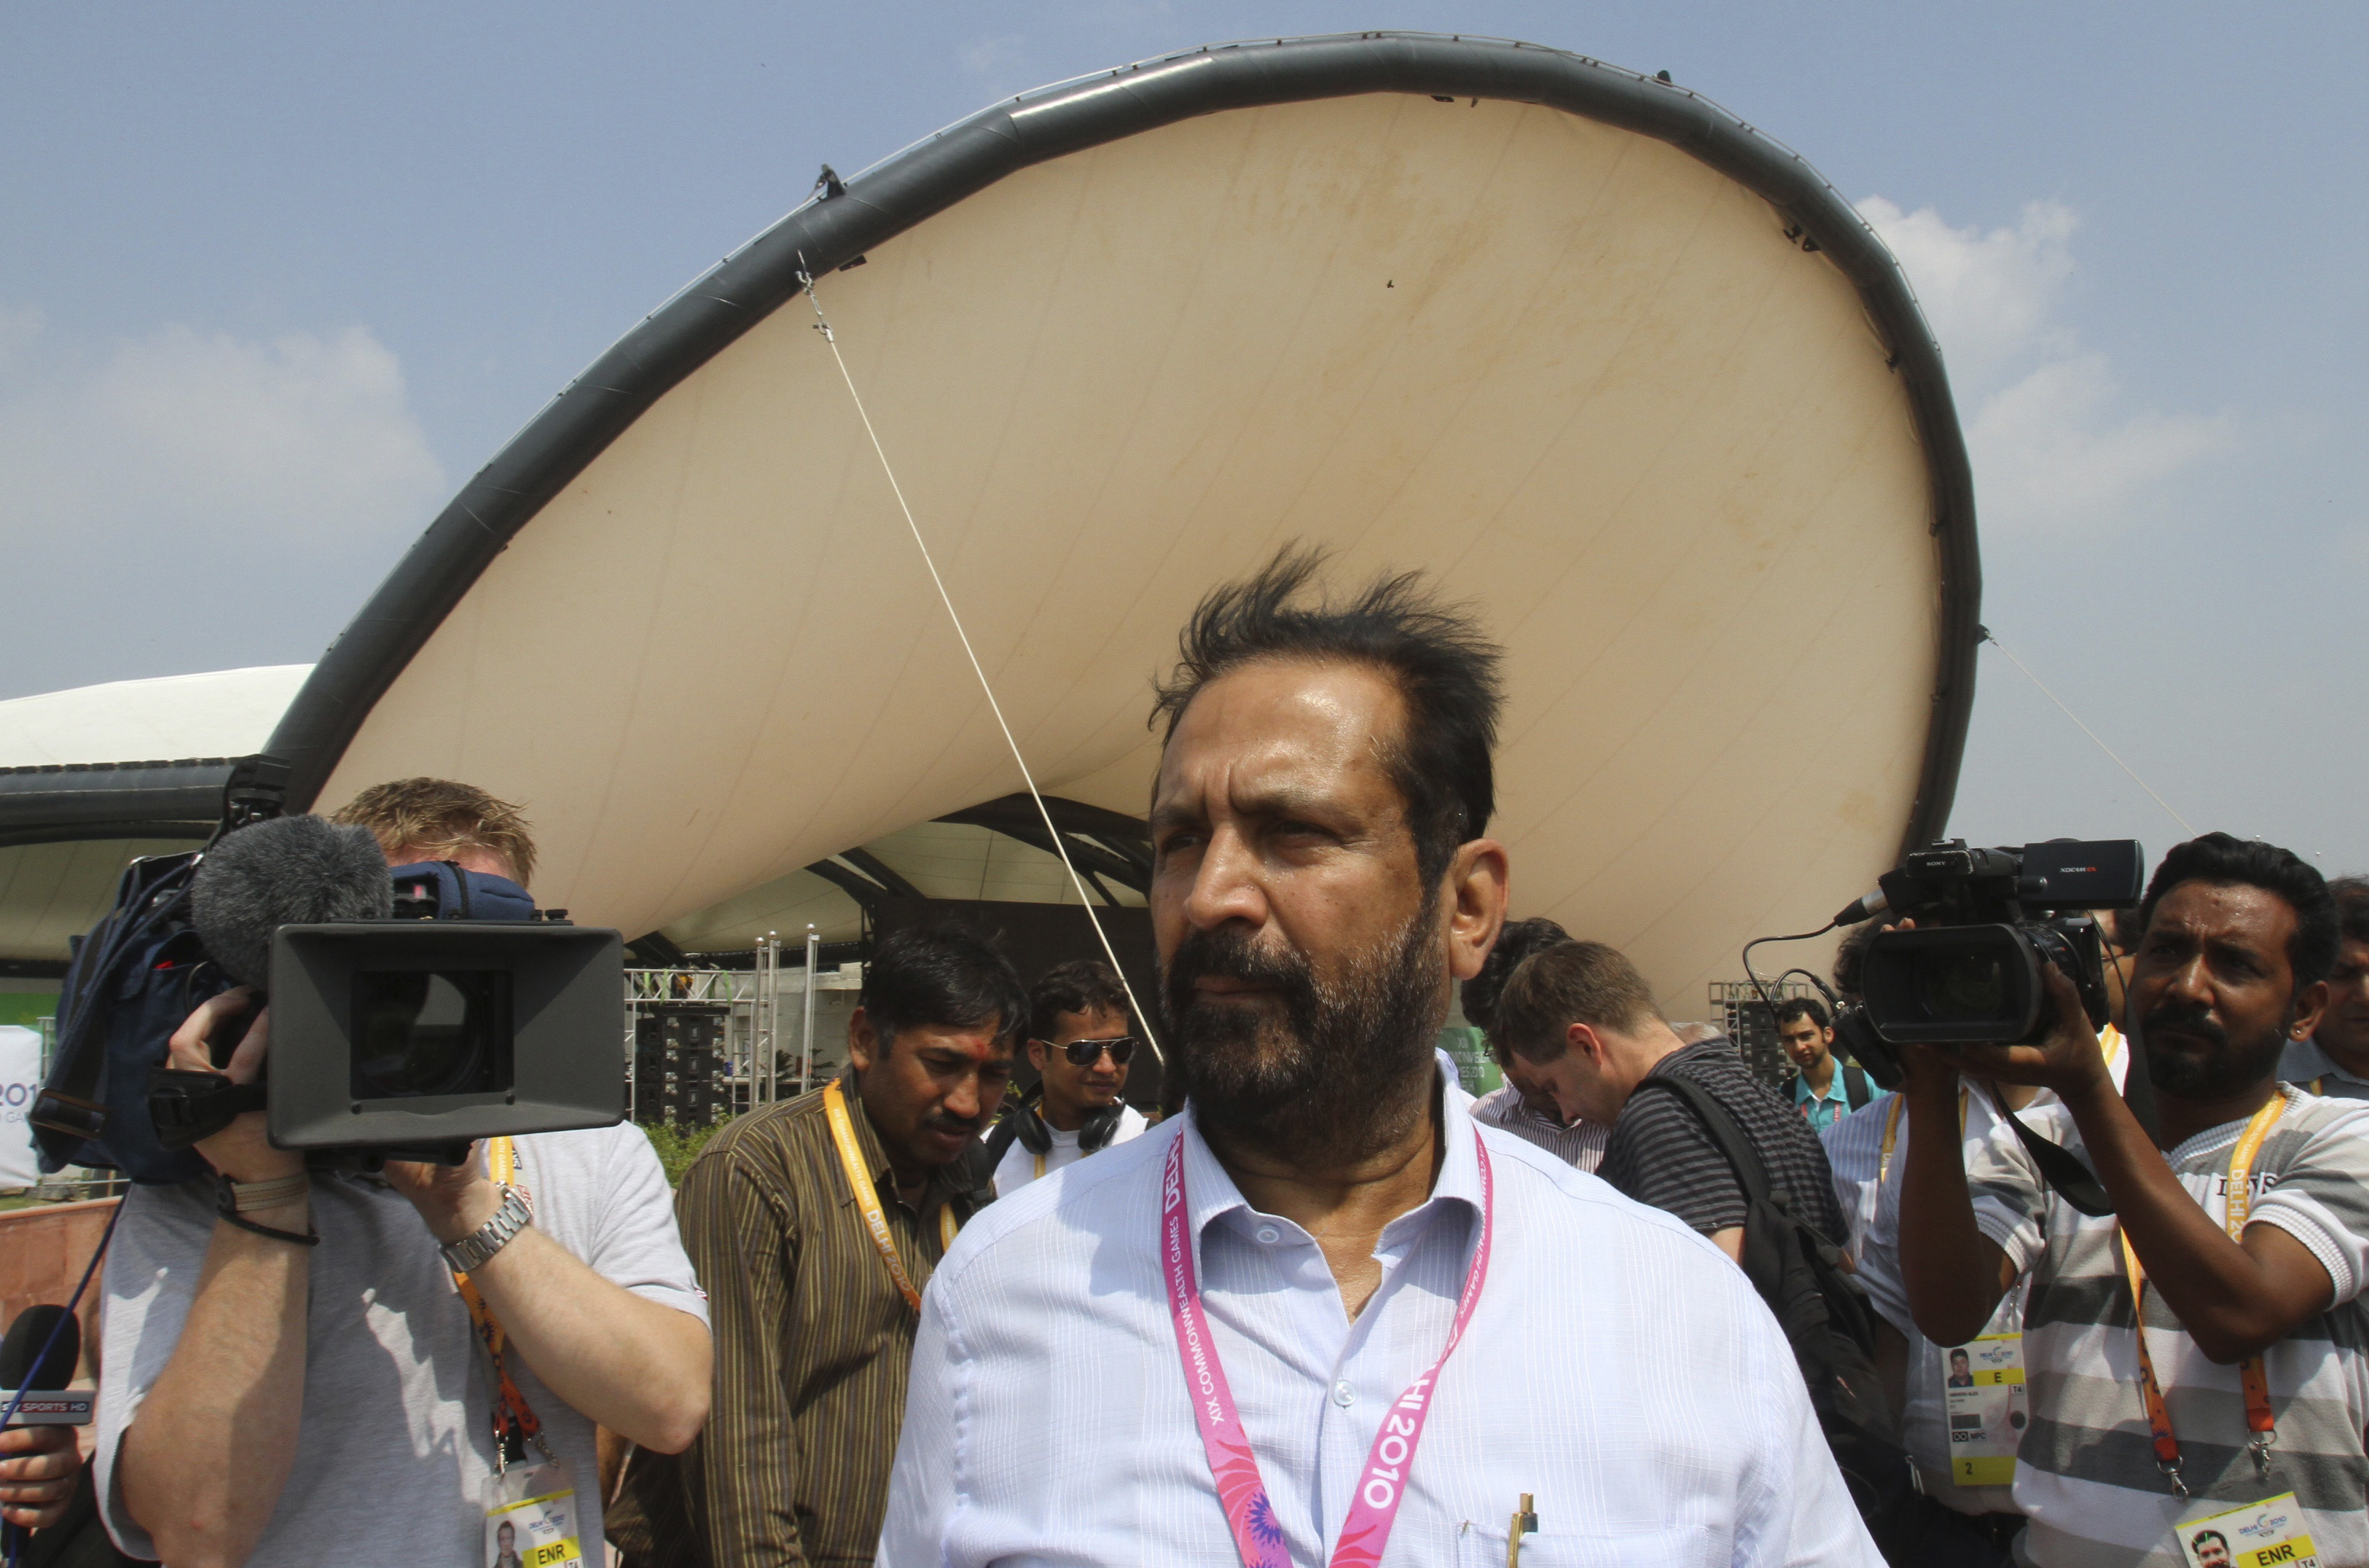 Suresh Kalmadi was implicated in one of the biggest scams to ever hit Indian sport (Image credit: Reuters)